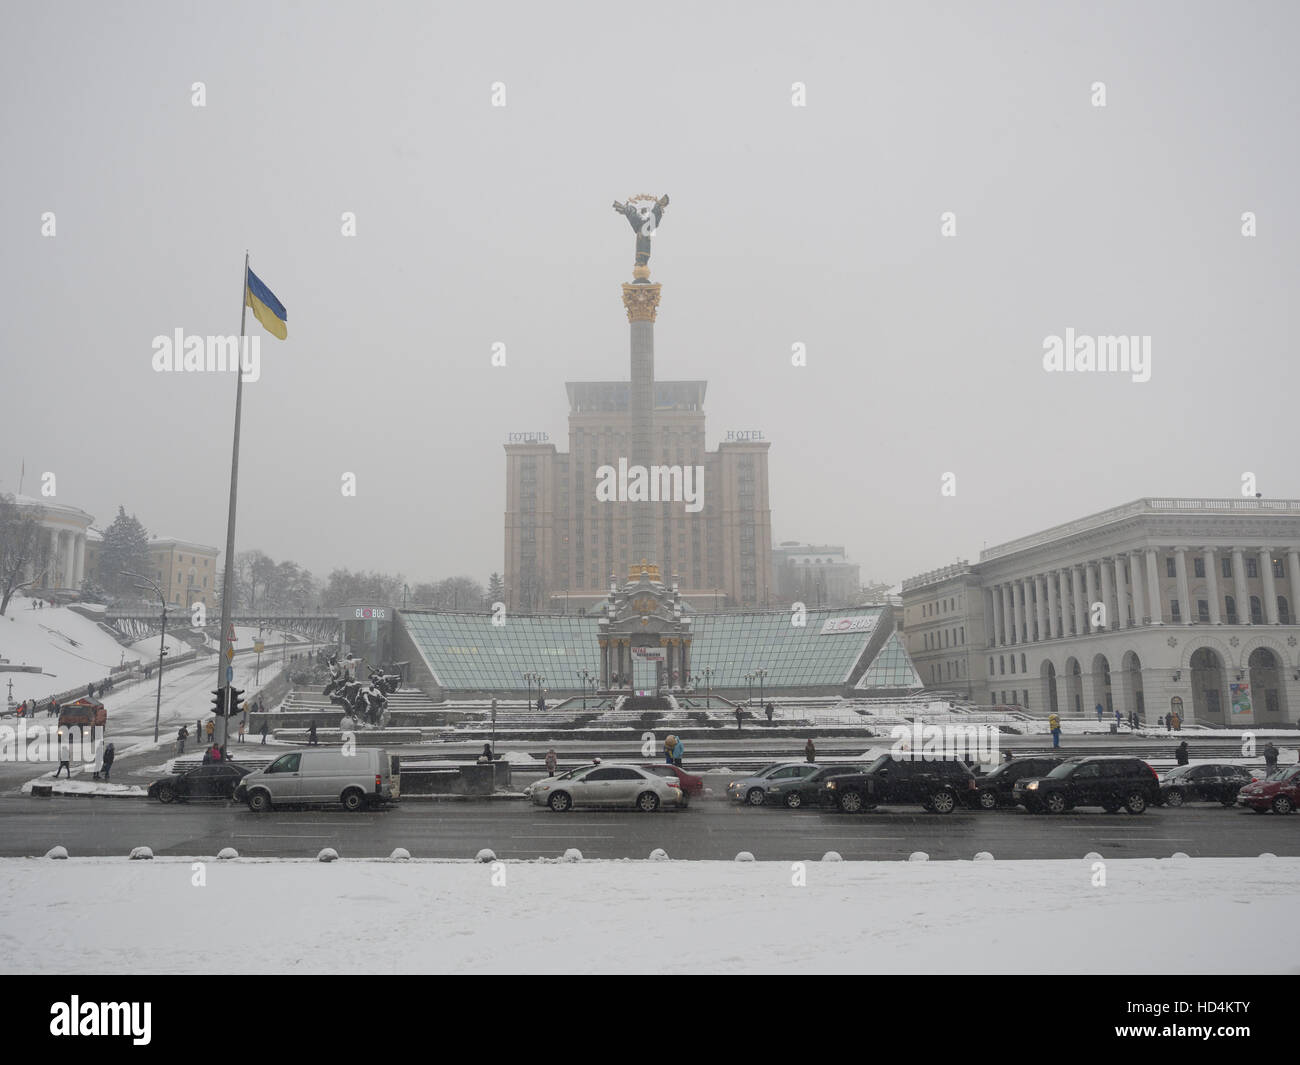 At the Independence Square in Kiev in Winter - The Monument of Independence in front of the Hotel Ukraina - Stock Image